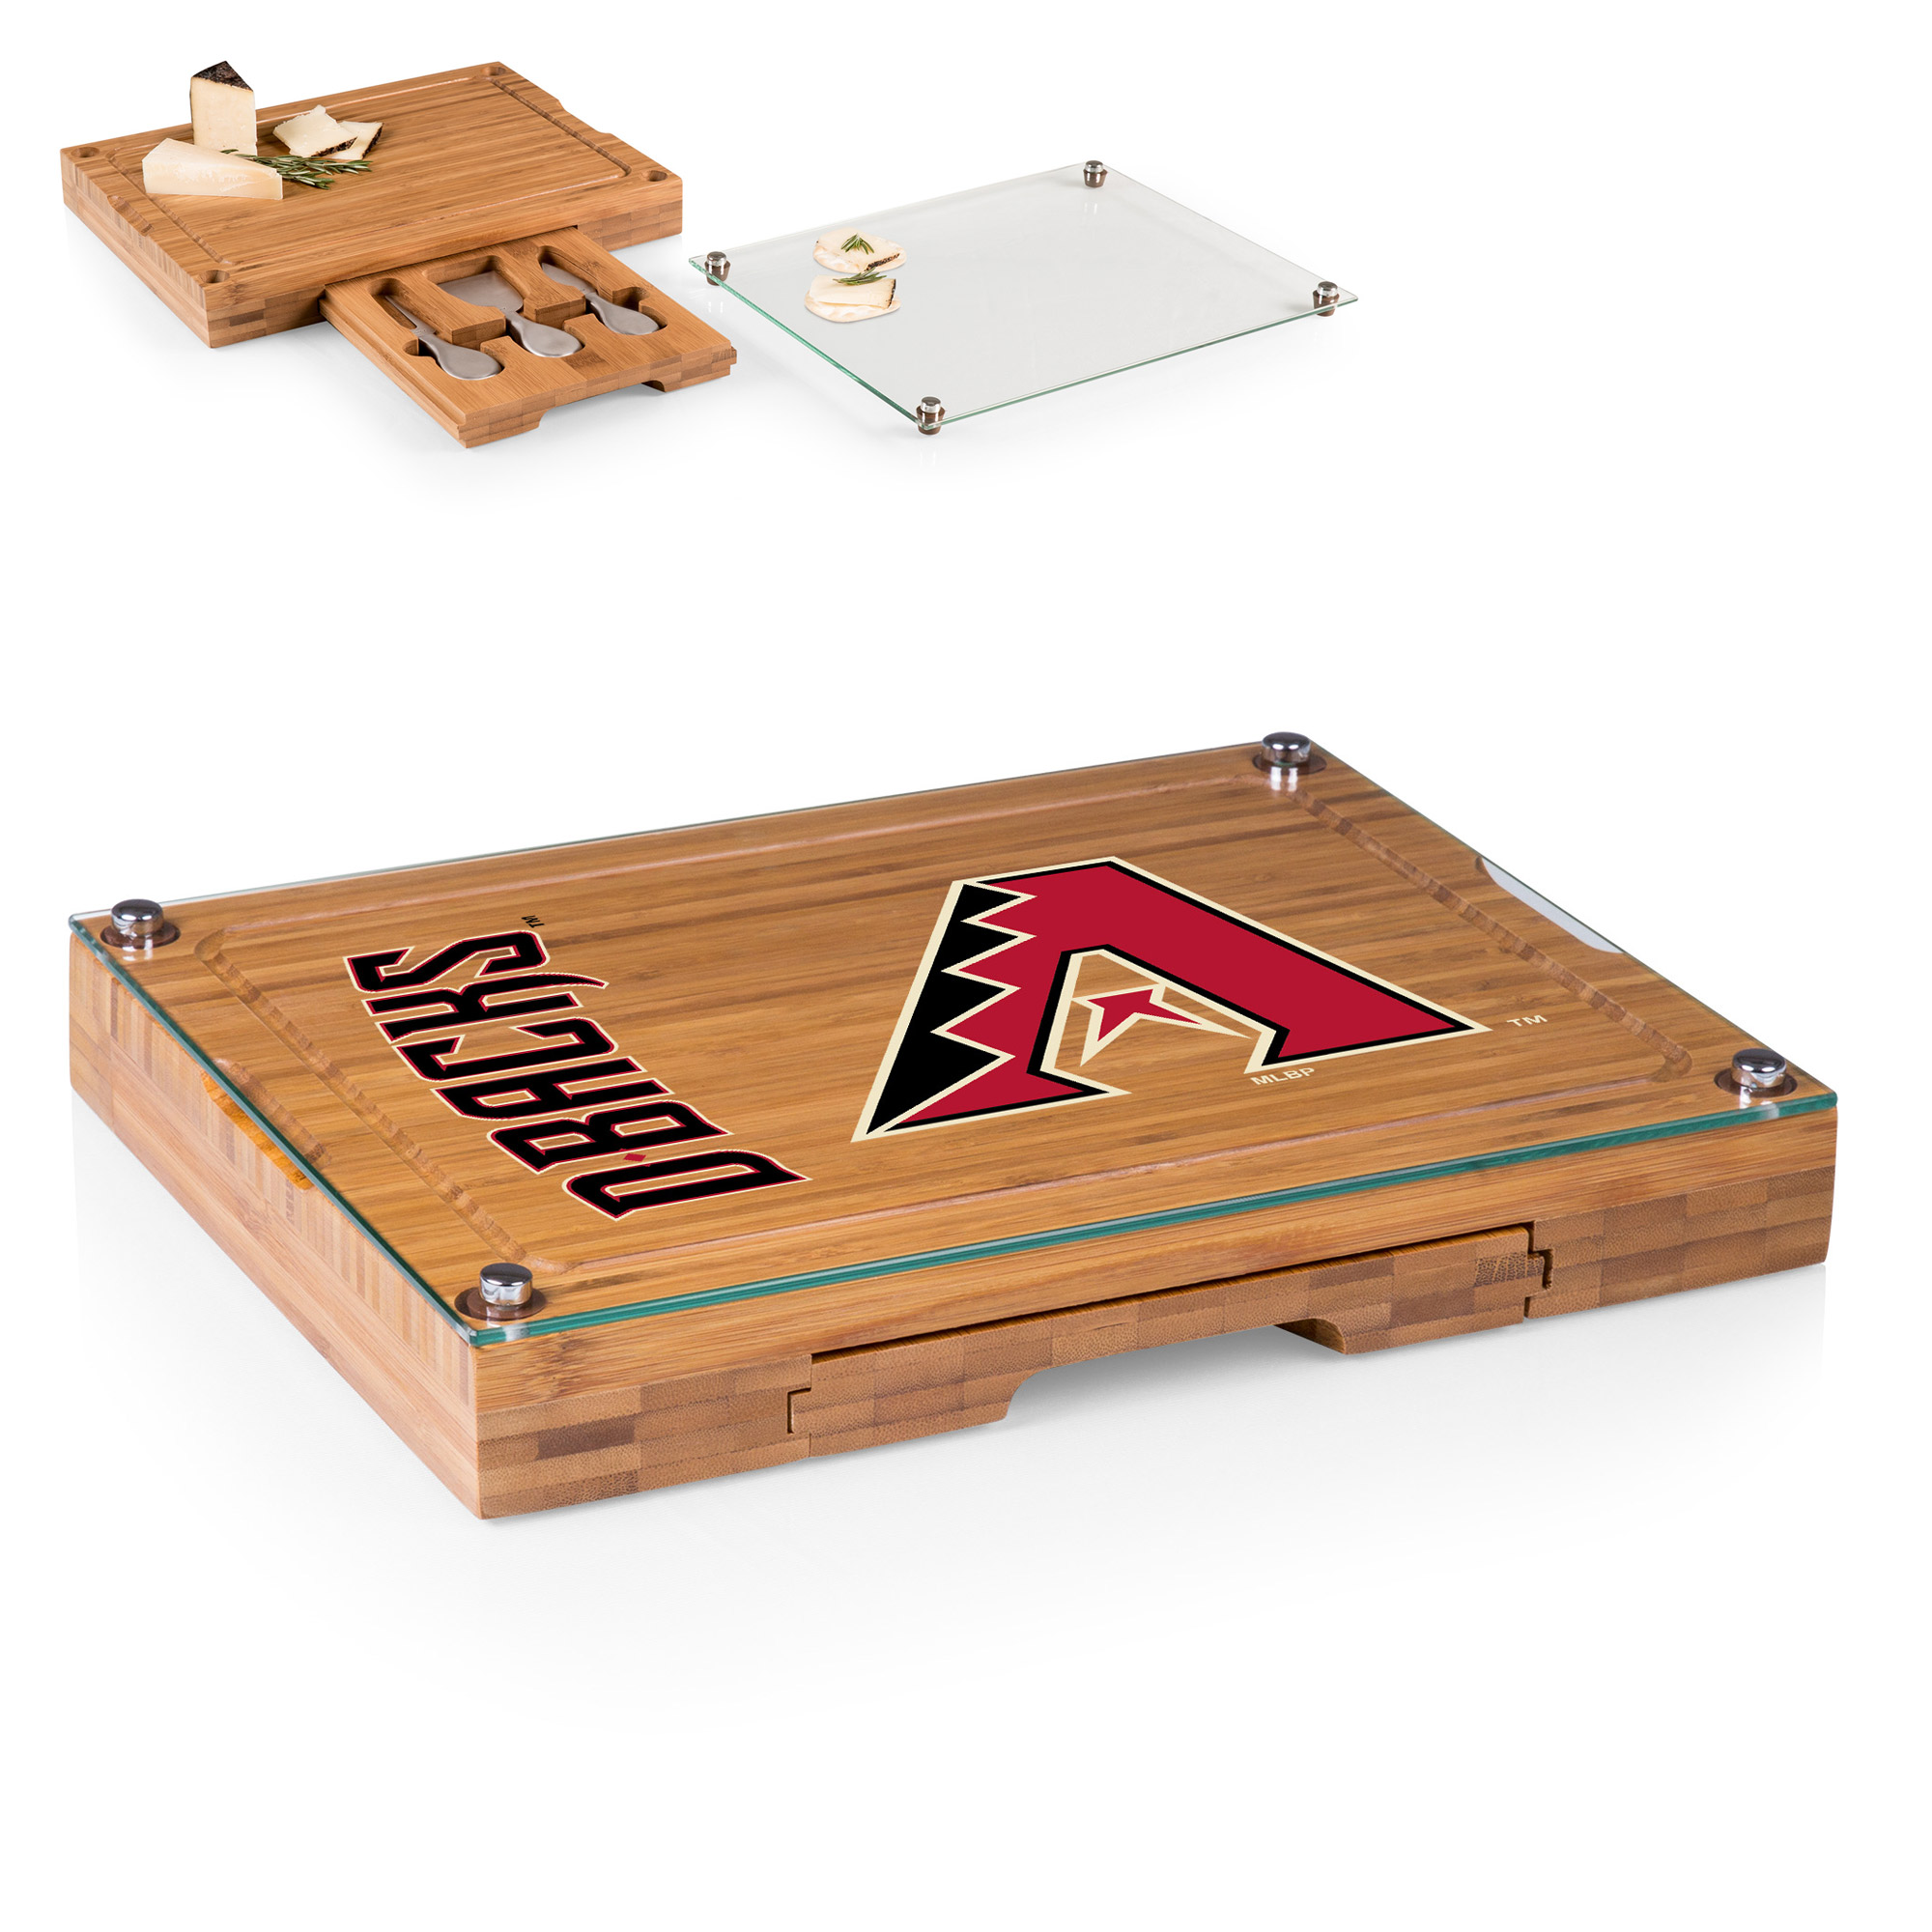 Arizona Diamondbacks Concerto Cheese Board with Serving Stage and Tools - No Size